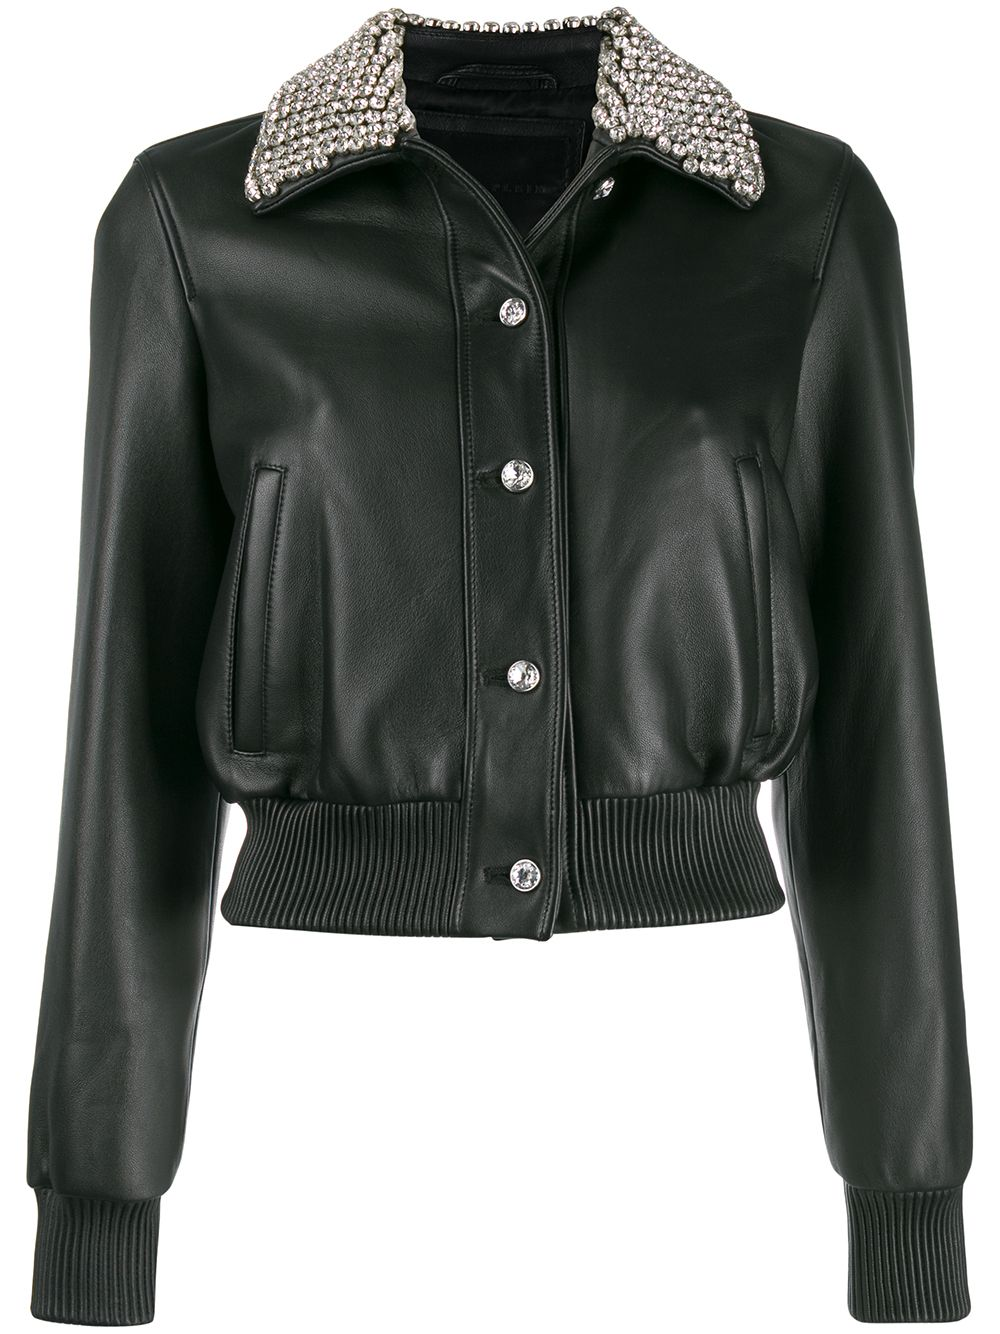 Philipp Plein cropped bomber jacket - Black von Philipp Plein